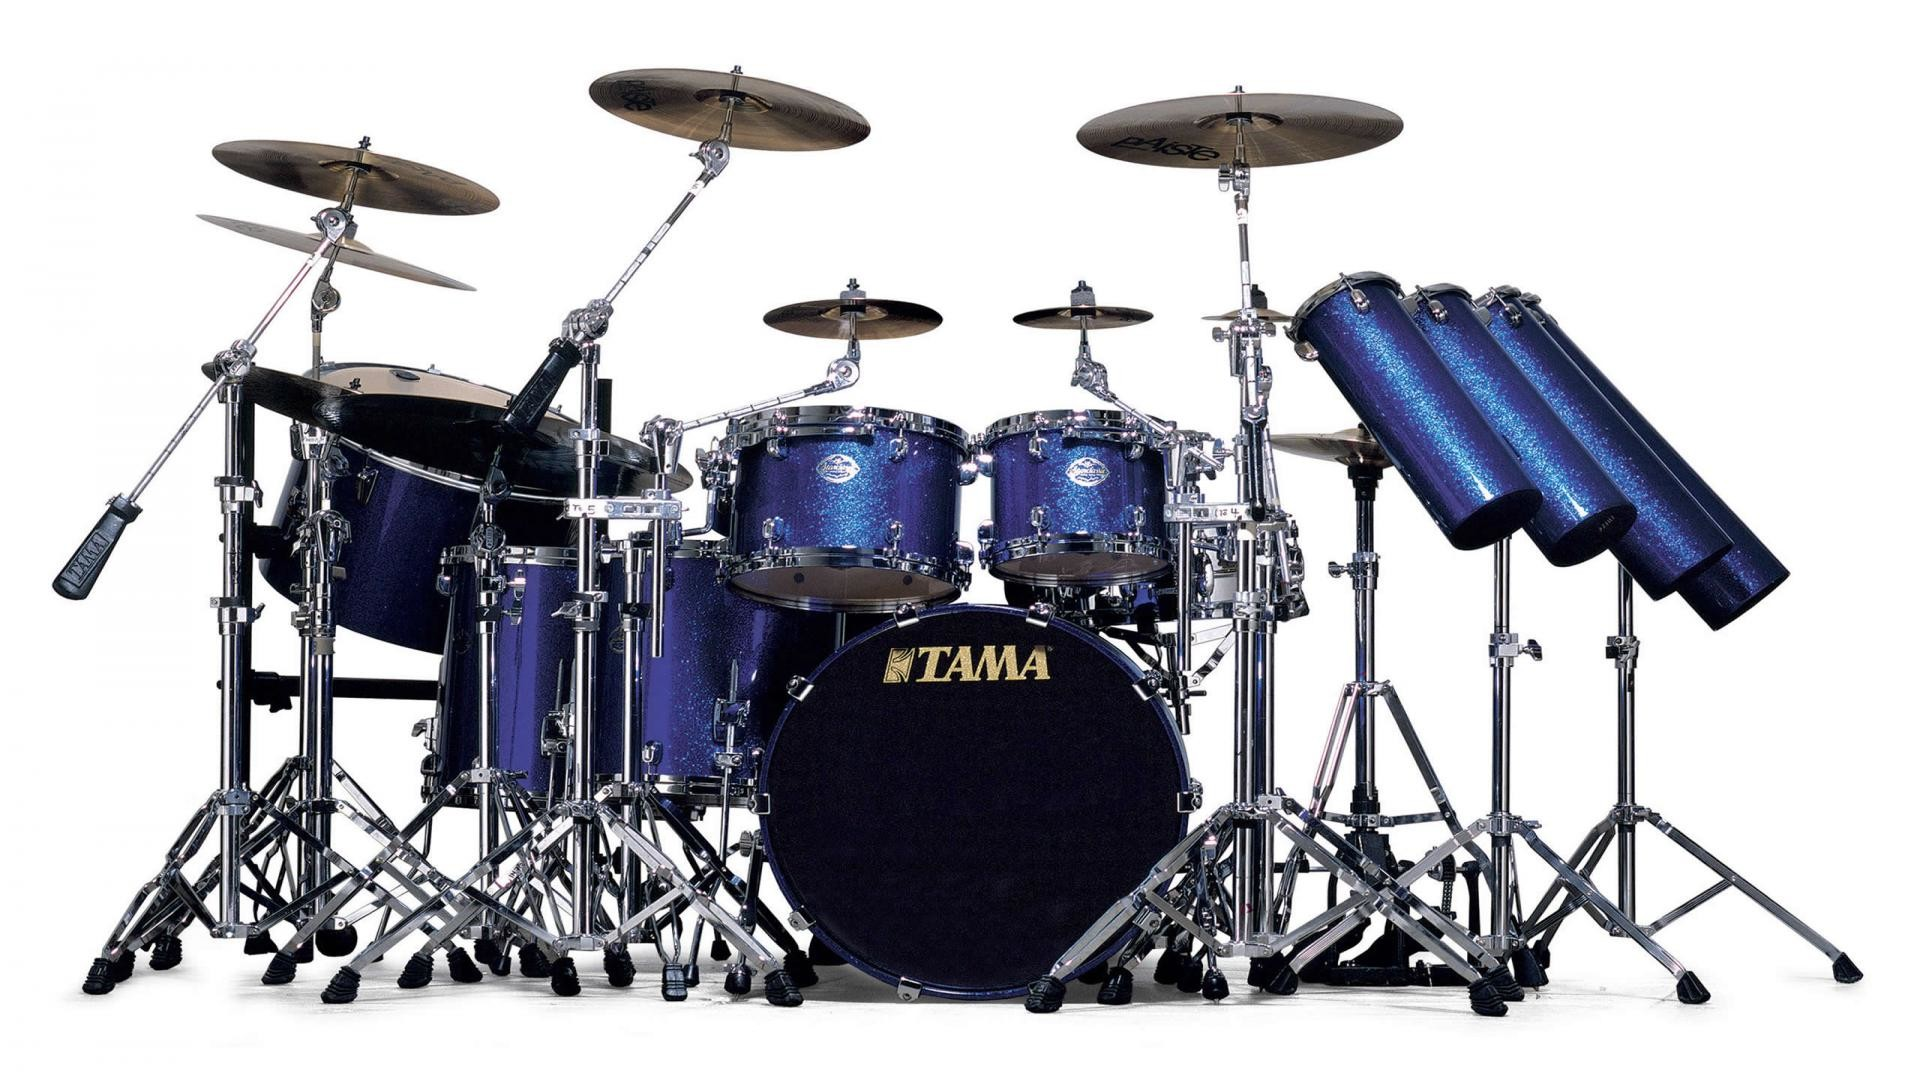 Drum Set Wallpaper 56 Images